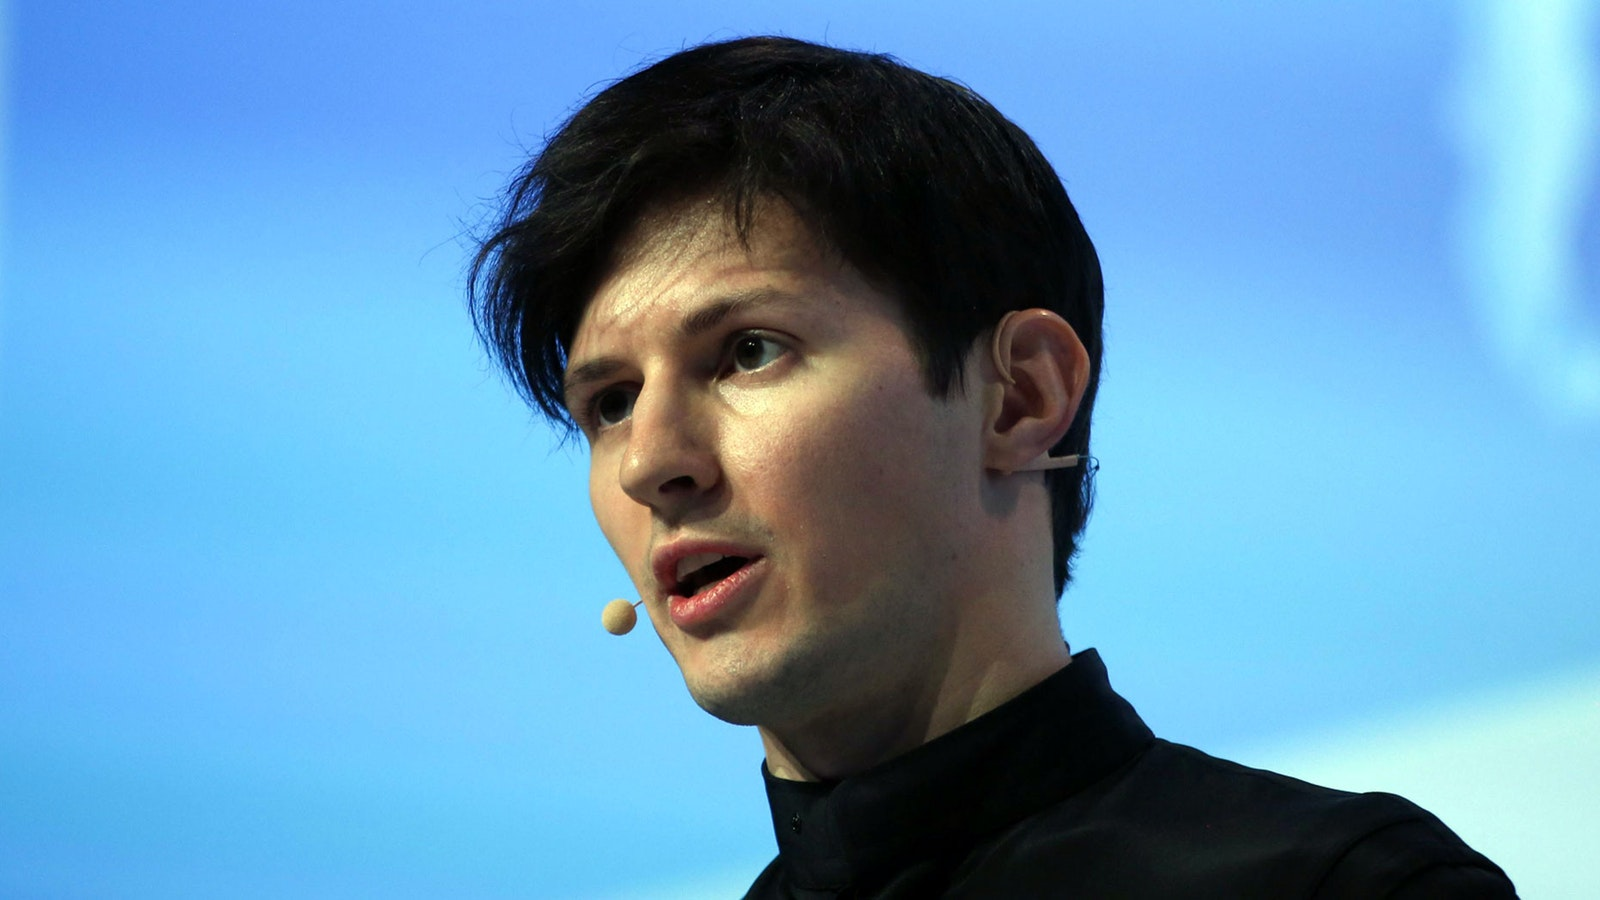 Pavel Durov, CEO of Telegram, in 2016. Photo by Bloomberg